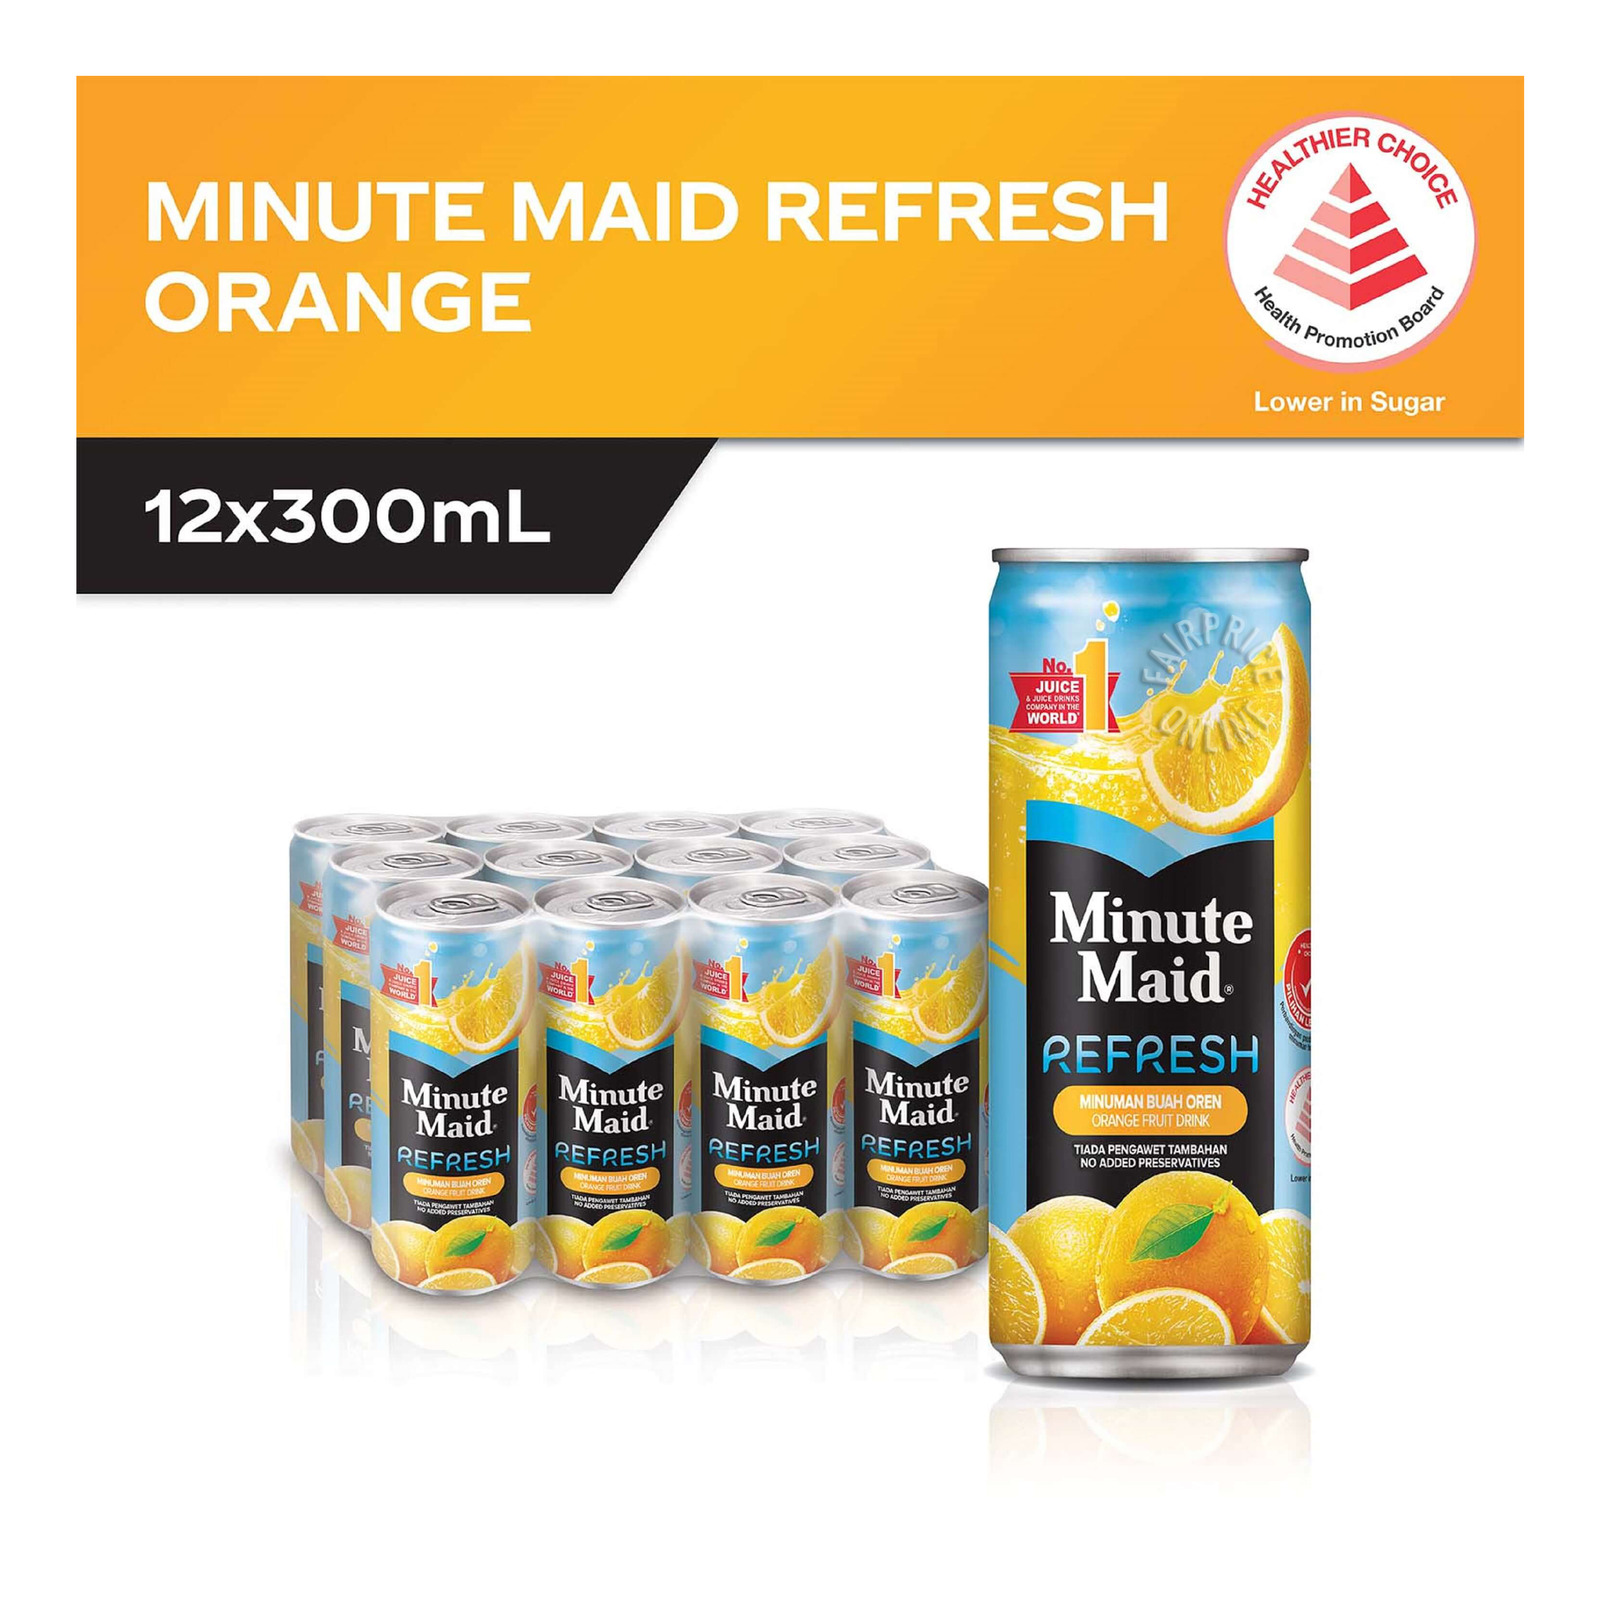 Minute Maid Refresh Fruit Can Drink - Orange